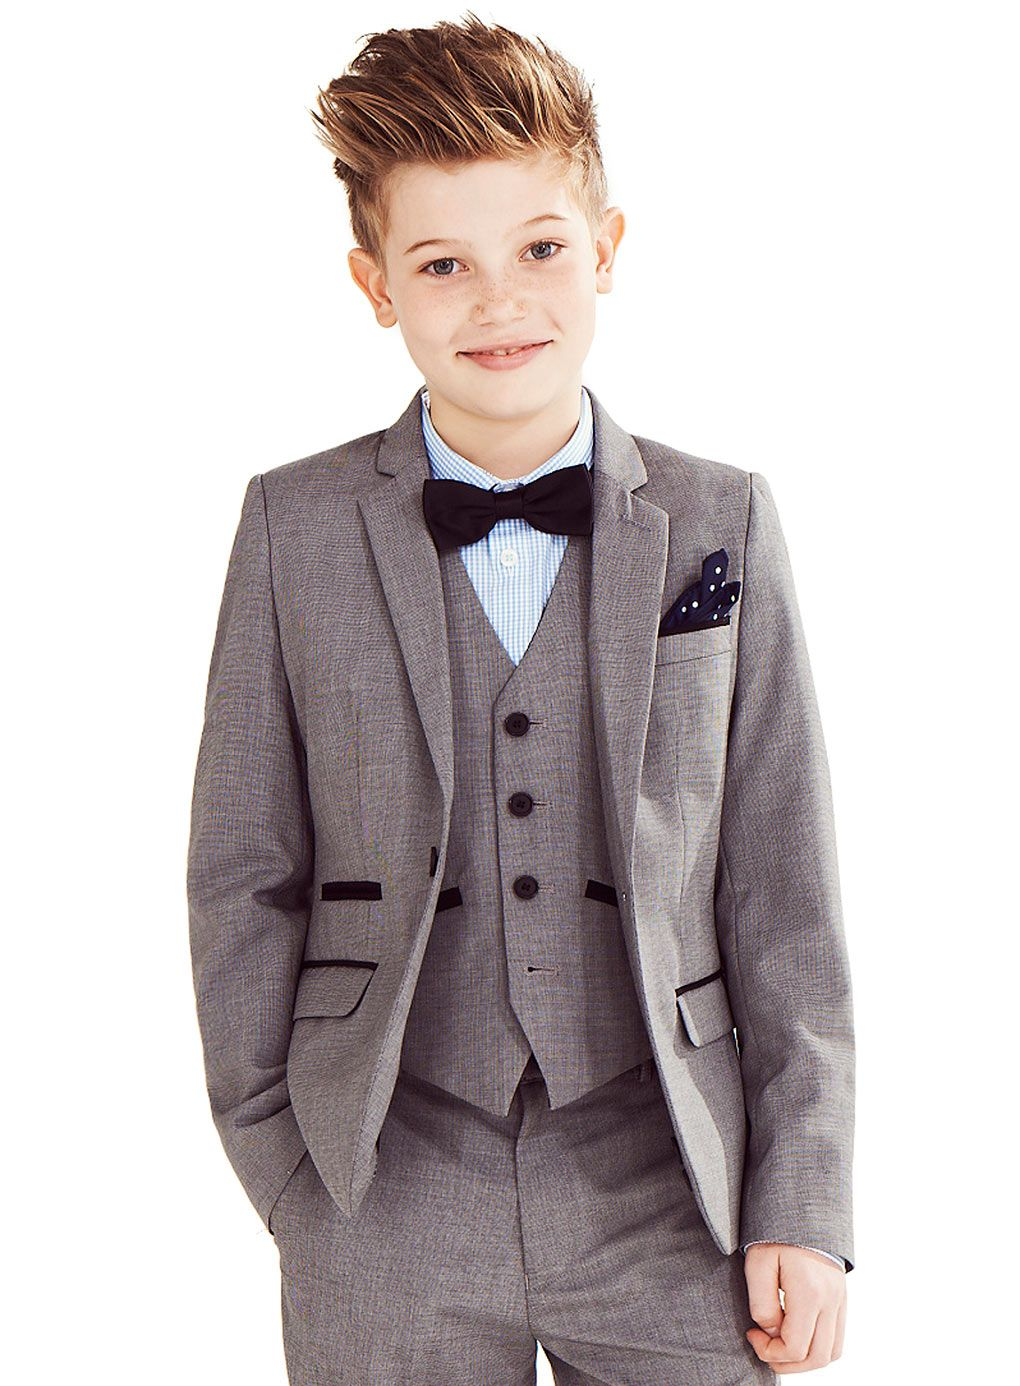 Transform him from a playful and energetic kid to a cultured gentleman with our boy's dress clothes! Start with the essentials, like dress shirts, slacks and dark socks. Consider picking up more than one lightly colored boys dress shirts so he's always ready for whatever occasion's on the horizon. For bottoms, a pair of black slacks is a must.